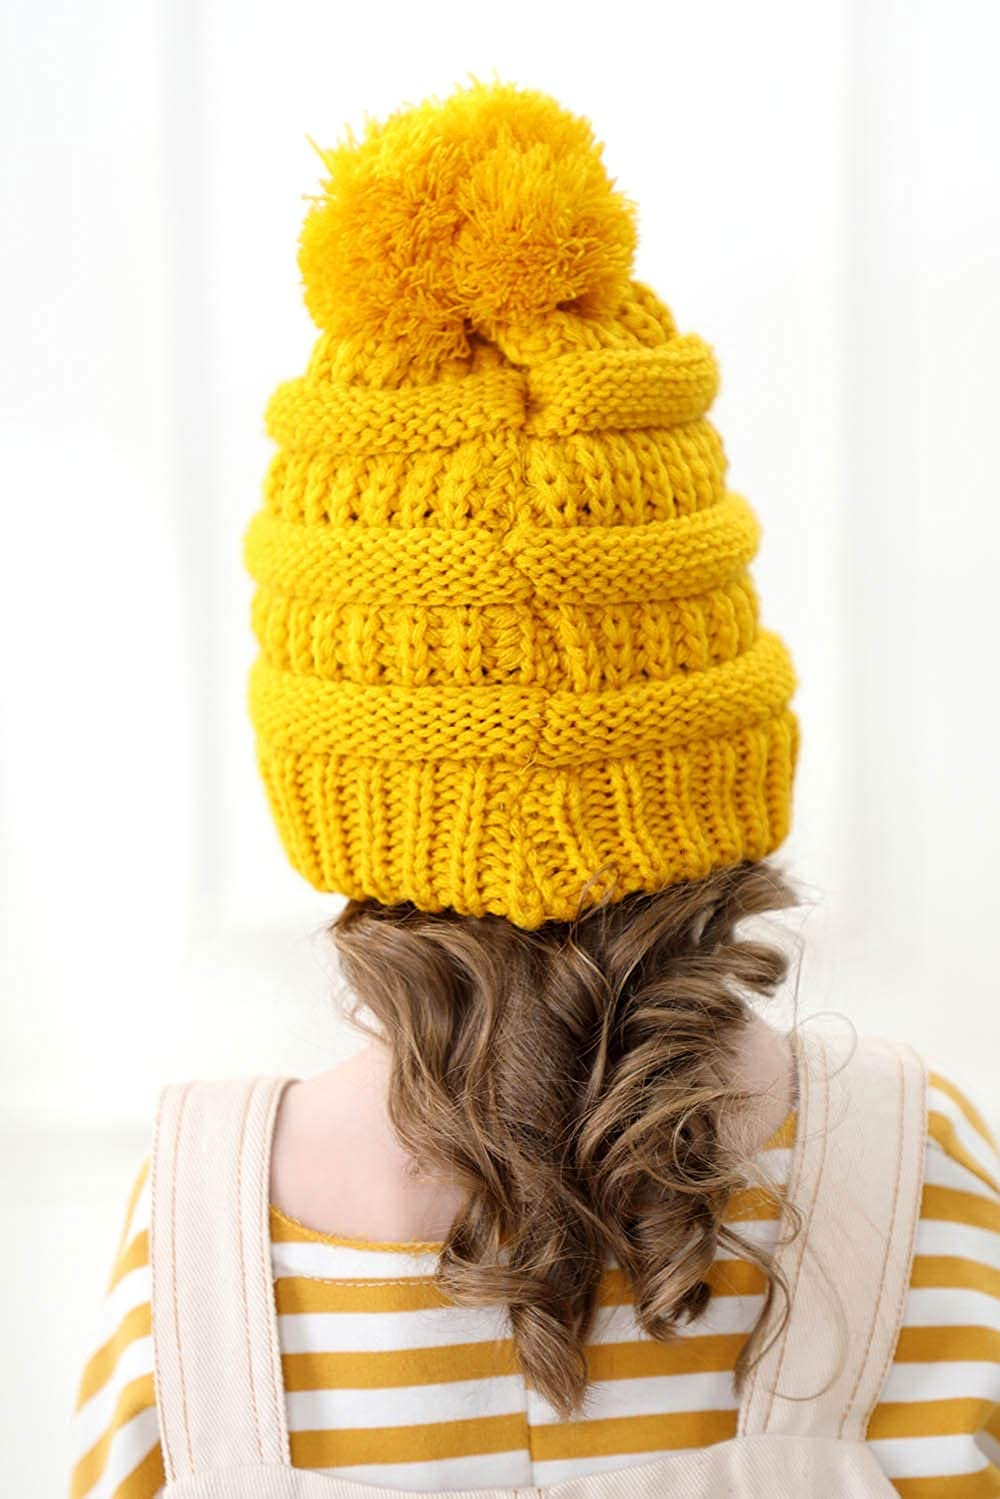 XINSHI Soft Warm Knitted Baby Hats Caps Cute Cozy Chunky Winter Infant Toddler Baby Beanies for Boys Girls